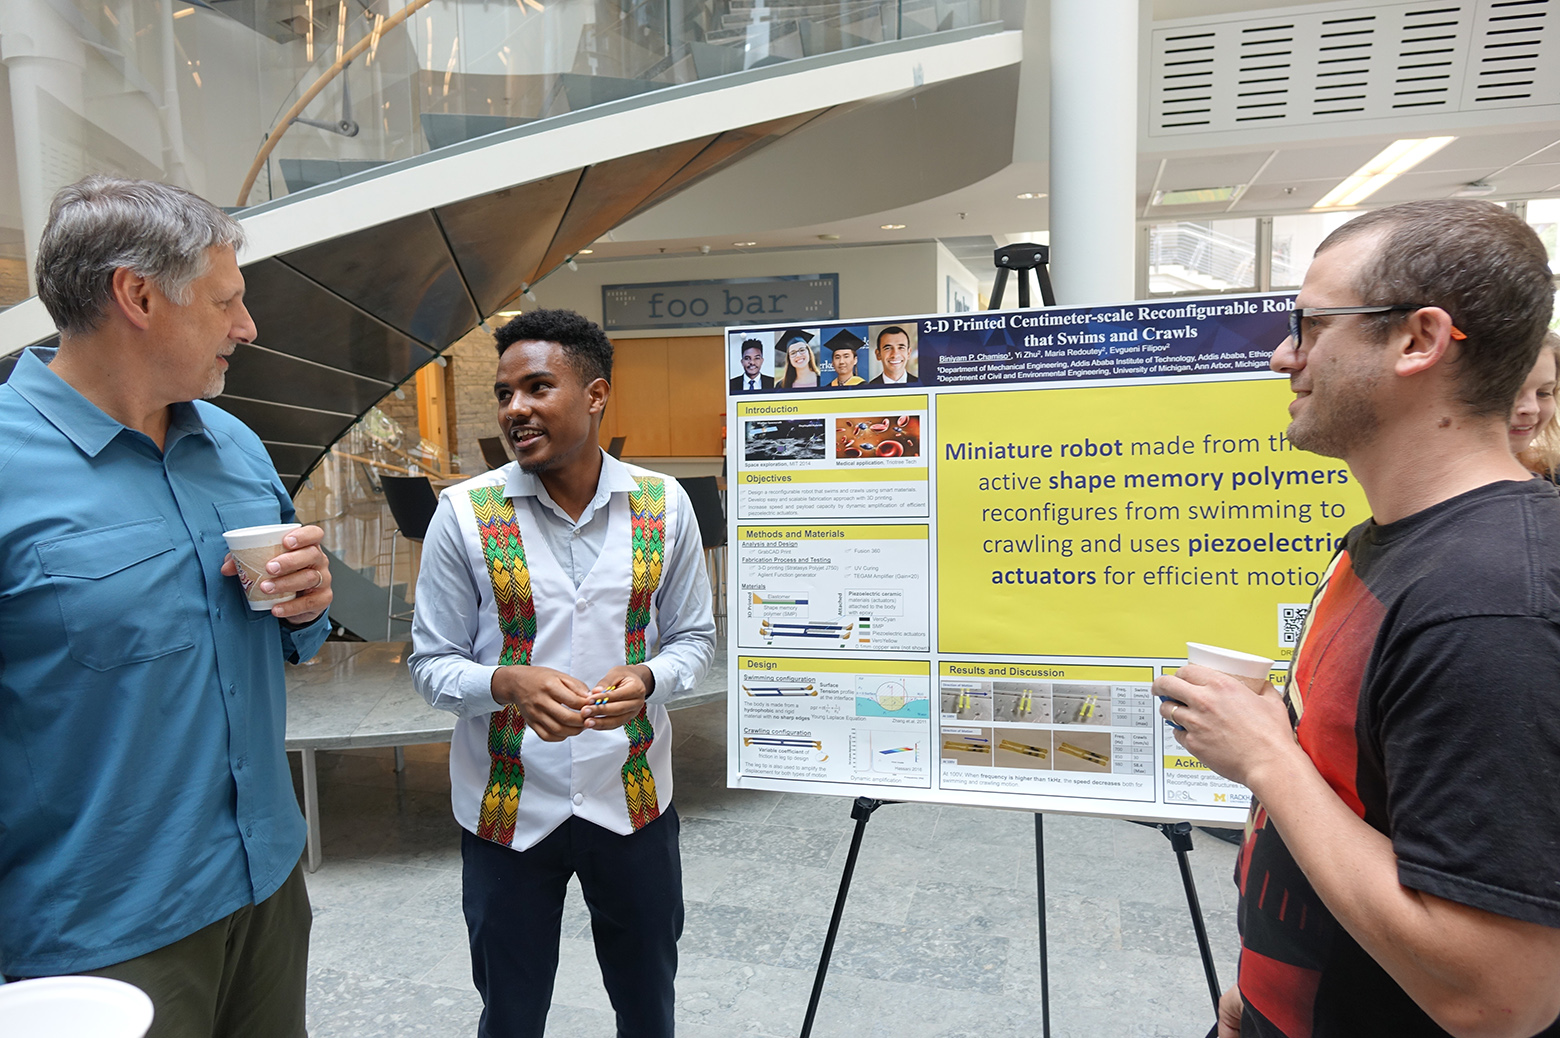 Astudent shows a poster to two faculty